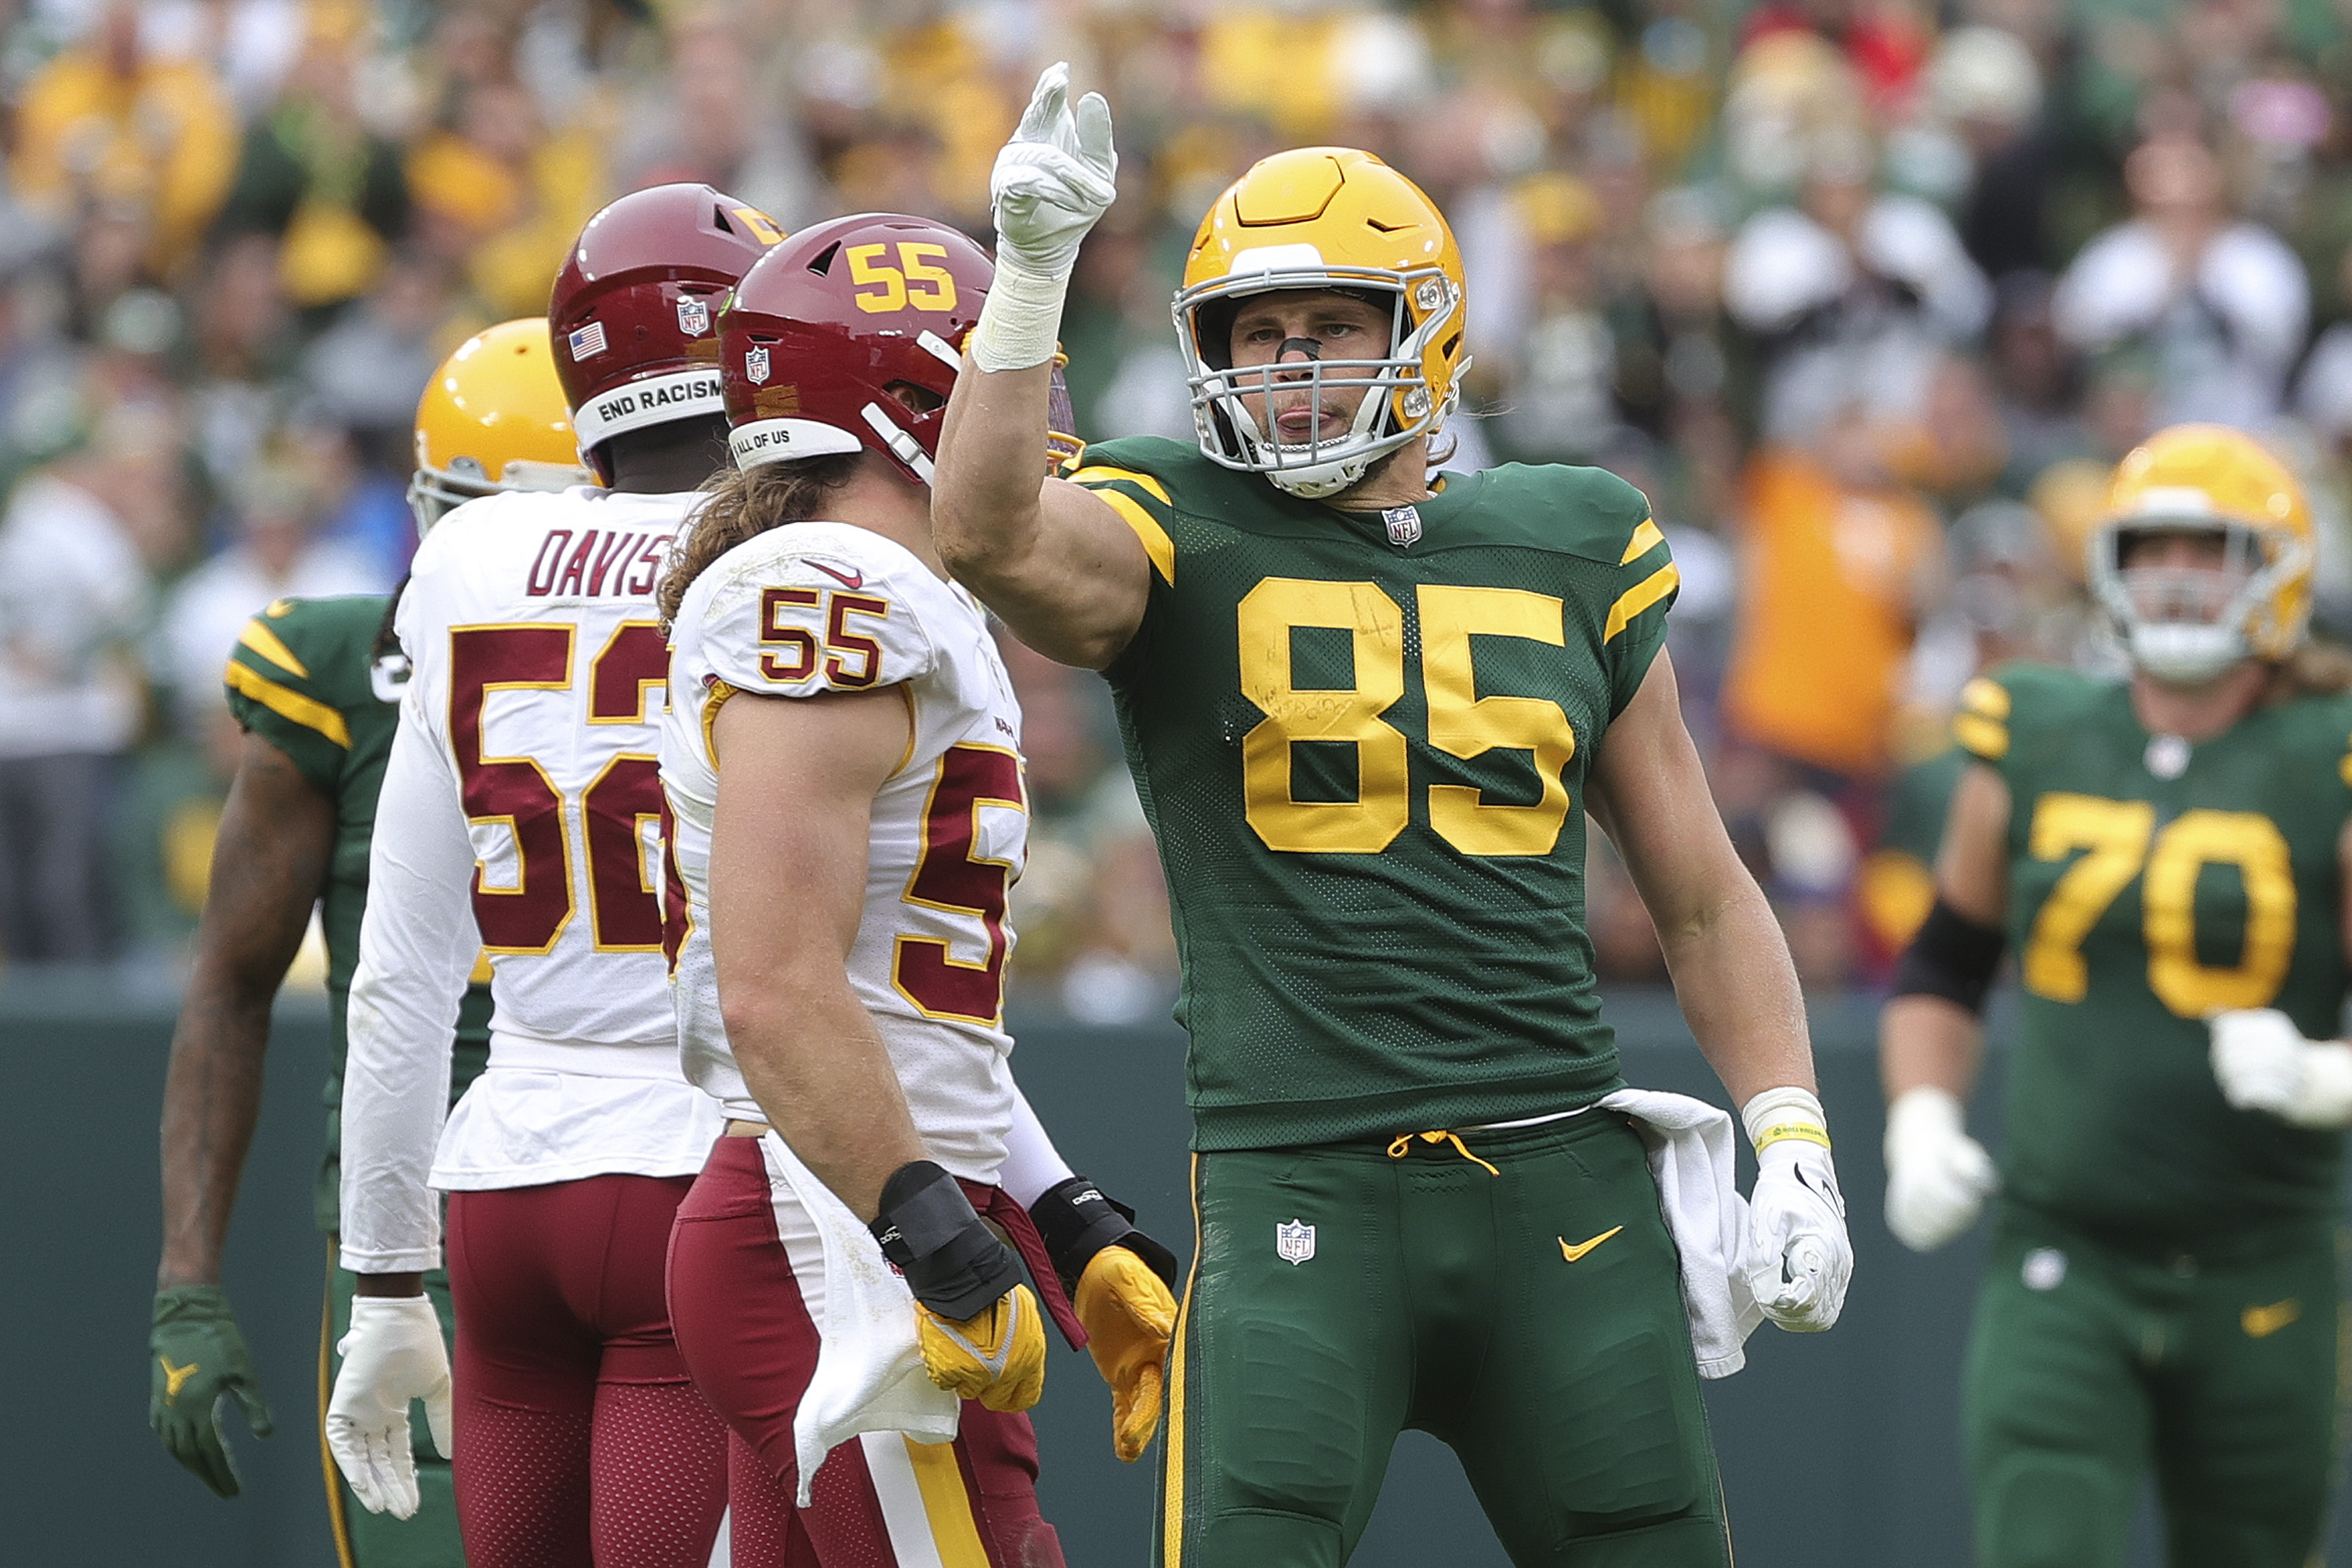 Robert Tonyan #85 of the Green Bay Packers reacts in the fourth quarter against the Washington Football Team in the game at Lambeau Field on October 24, 2021 in Green Bay, Wisconsin.